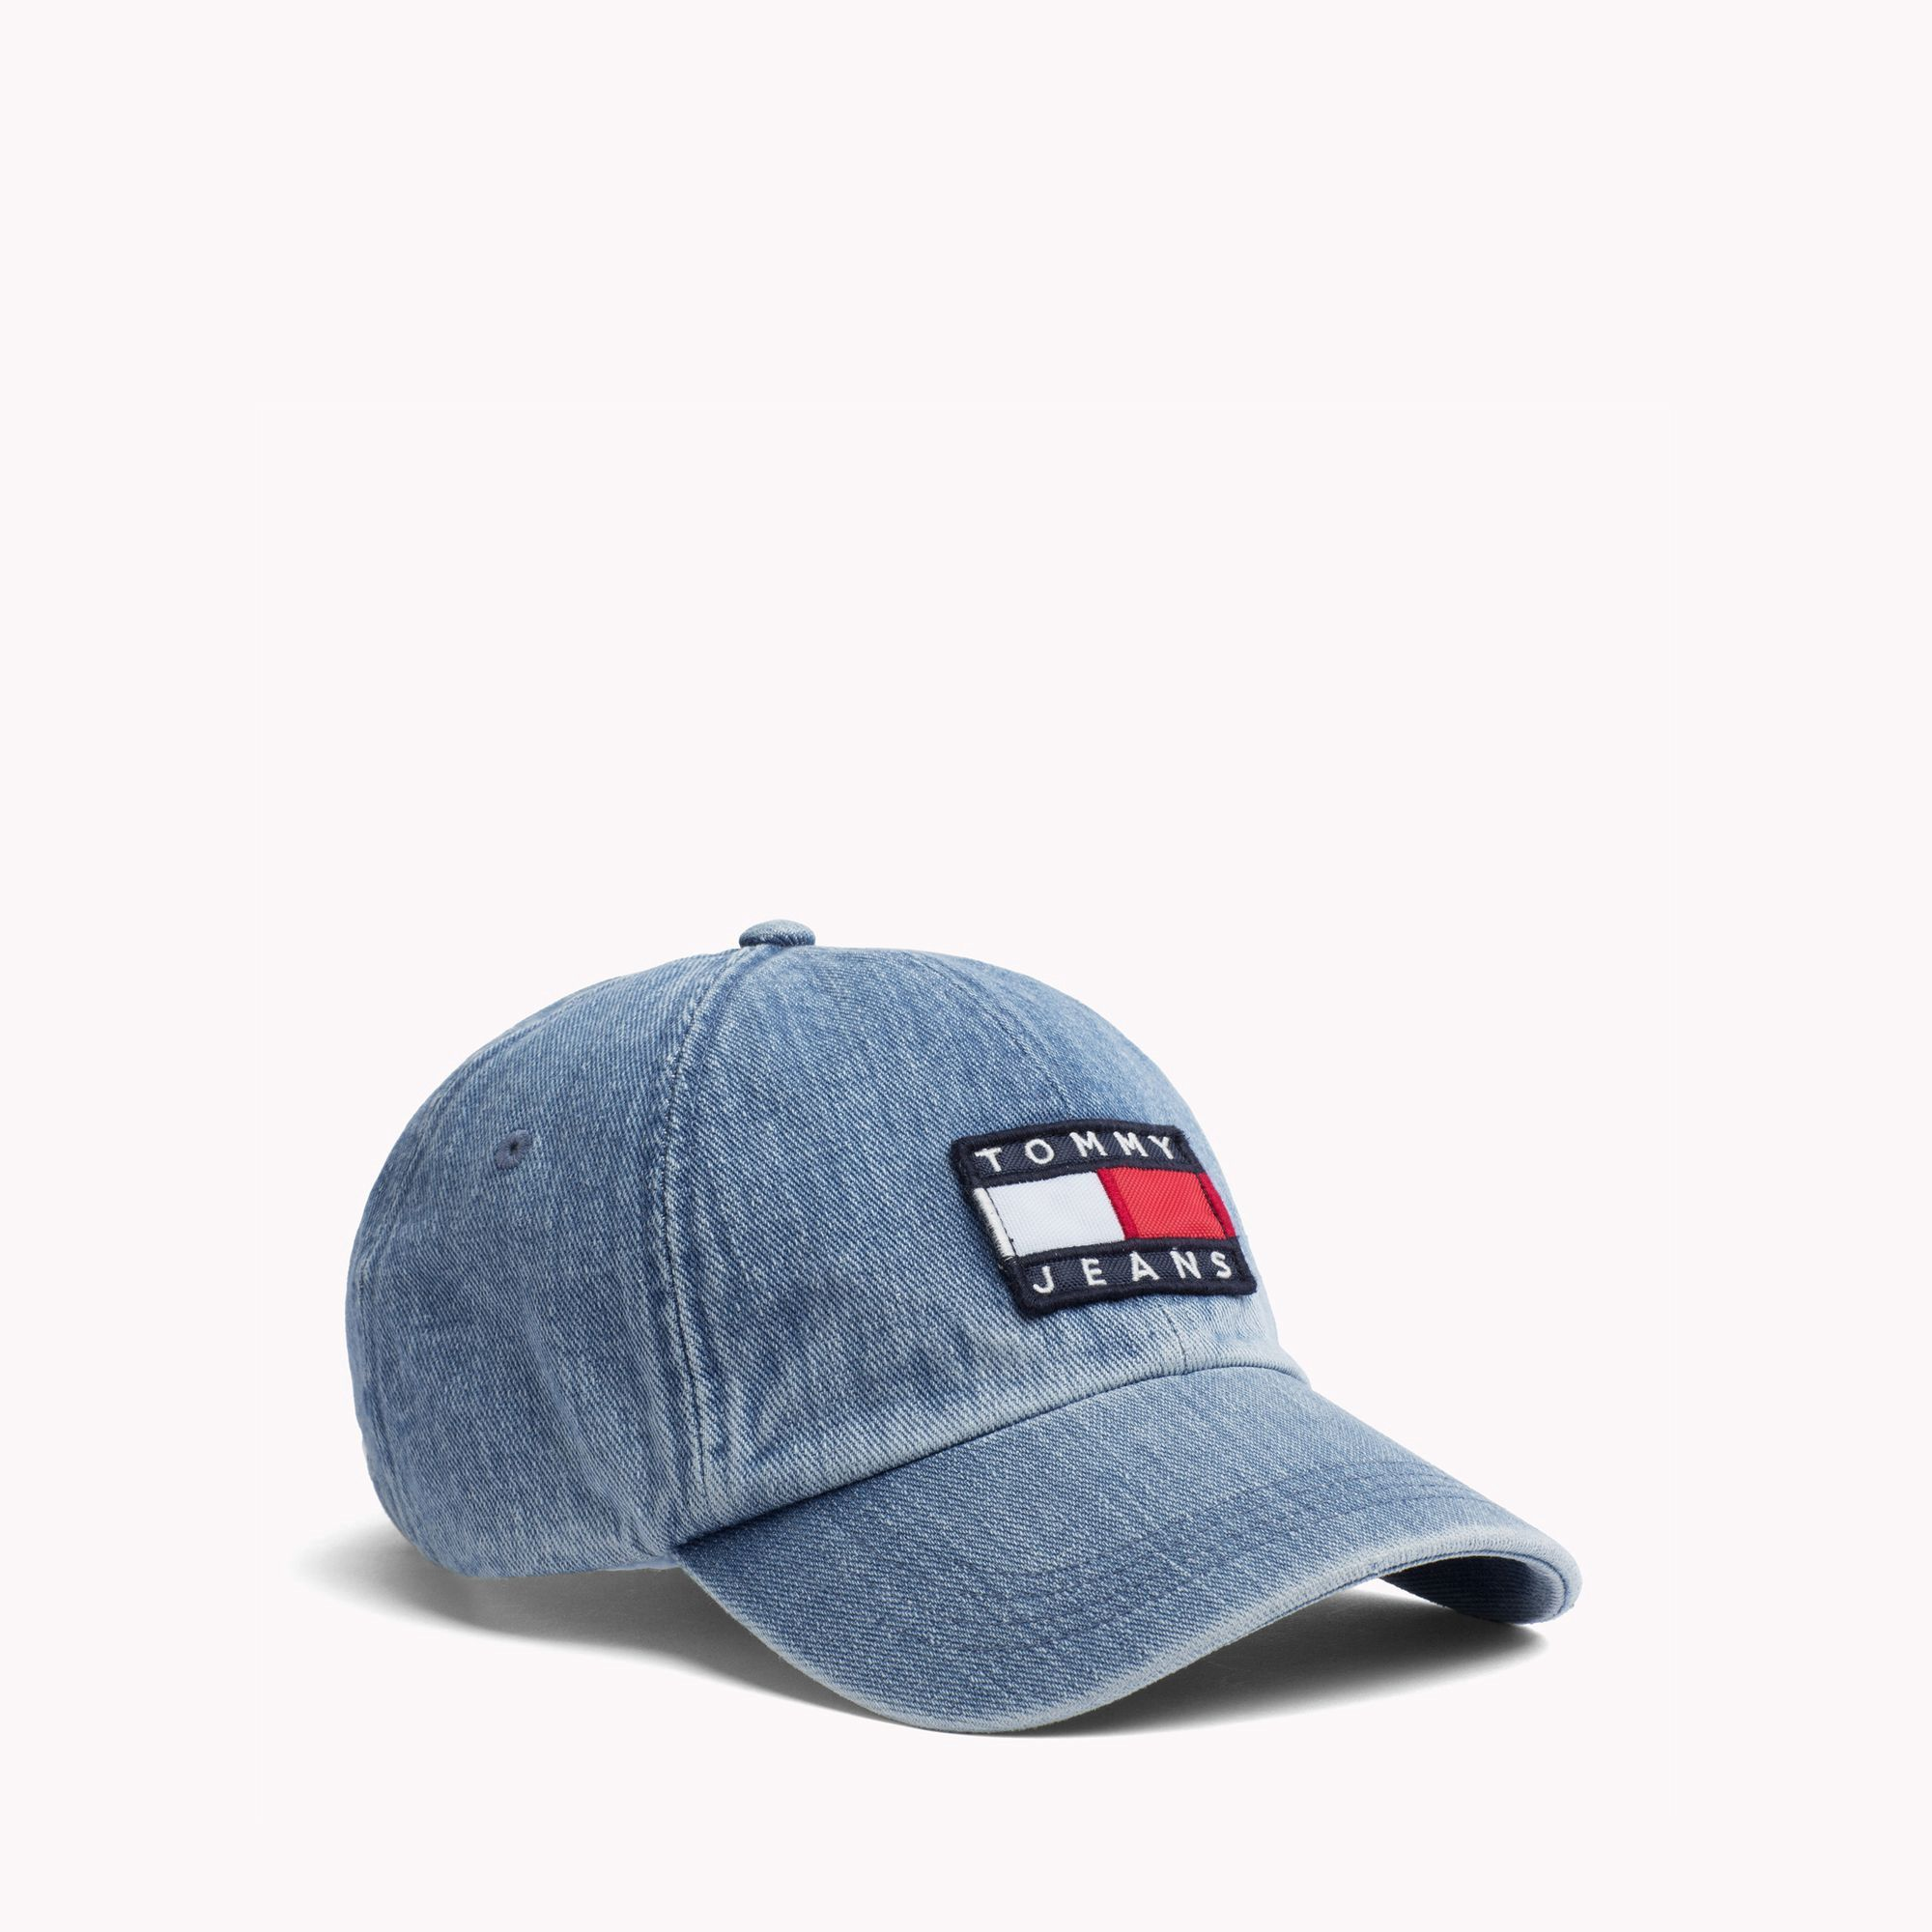 Tommy Hilfiger Capsule Collection Sailing Denim Cap Tommyhilfiger Denim Cap Tommy Hilfiger Tommy